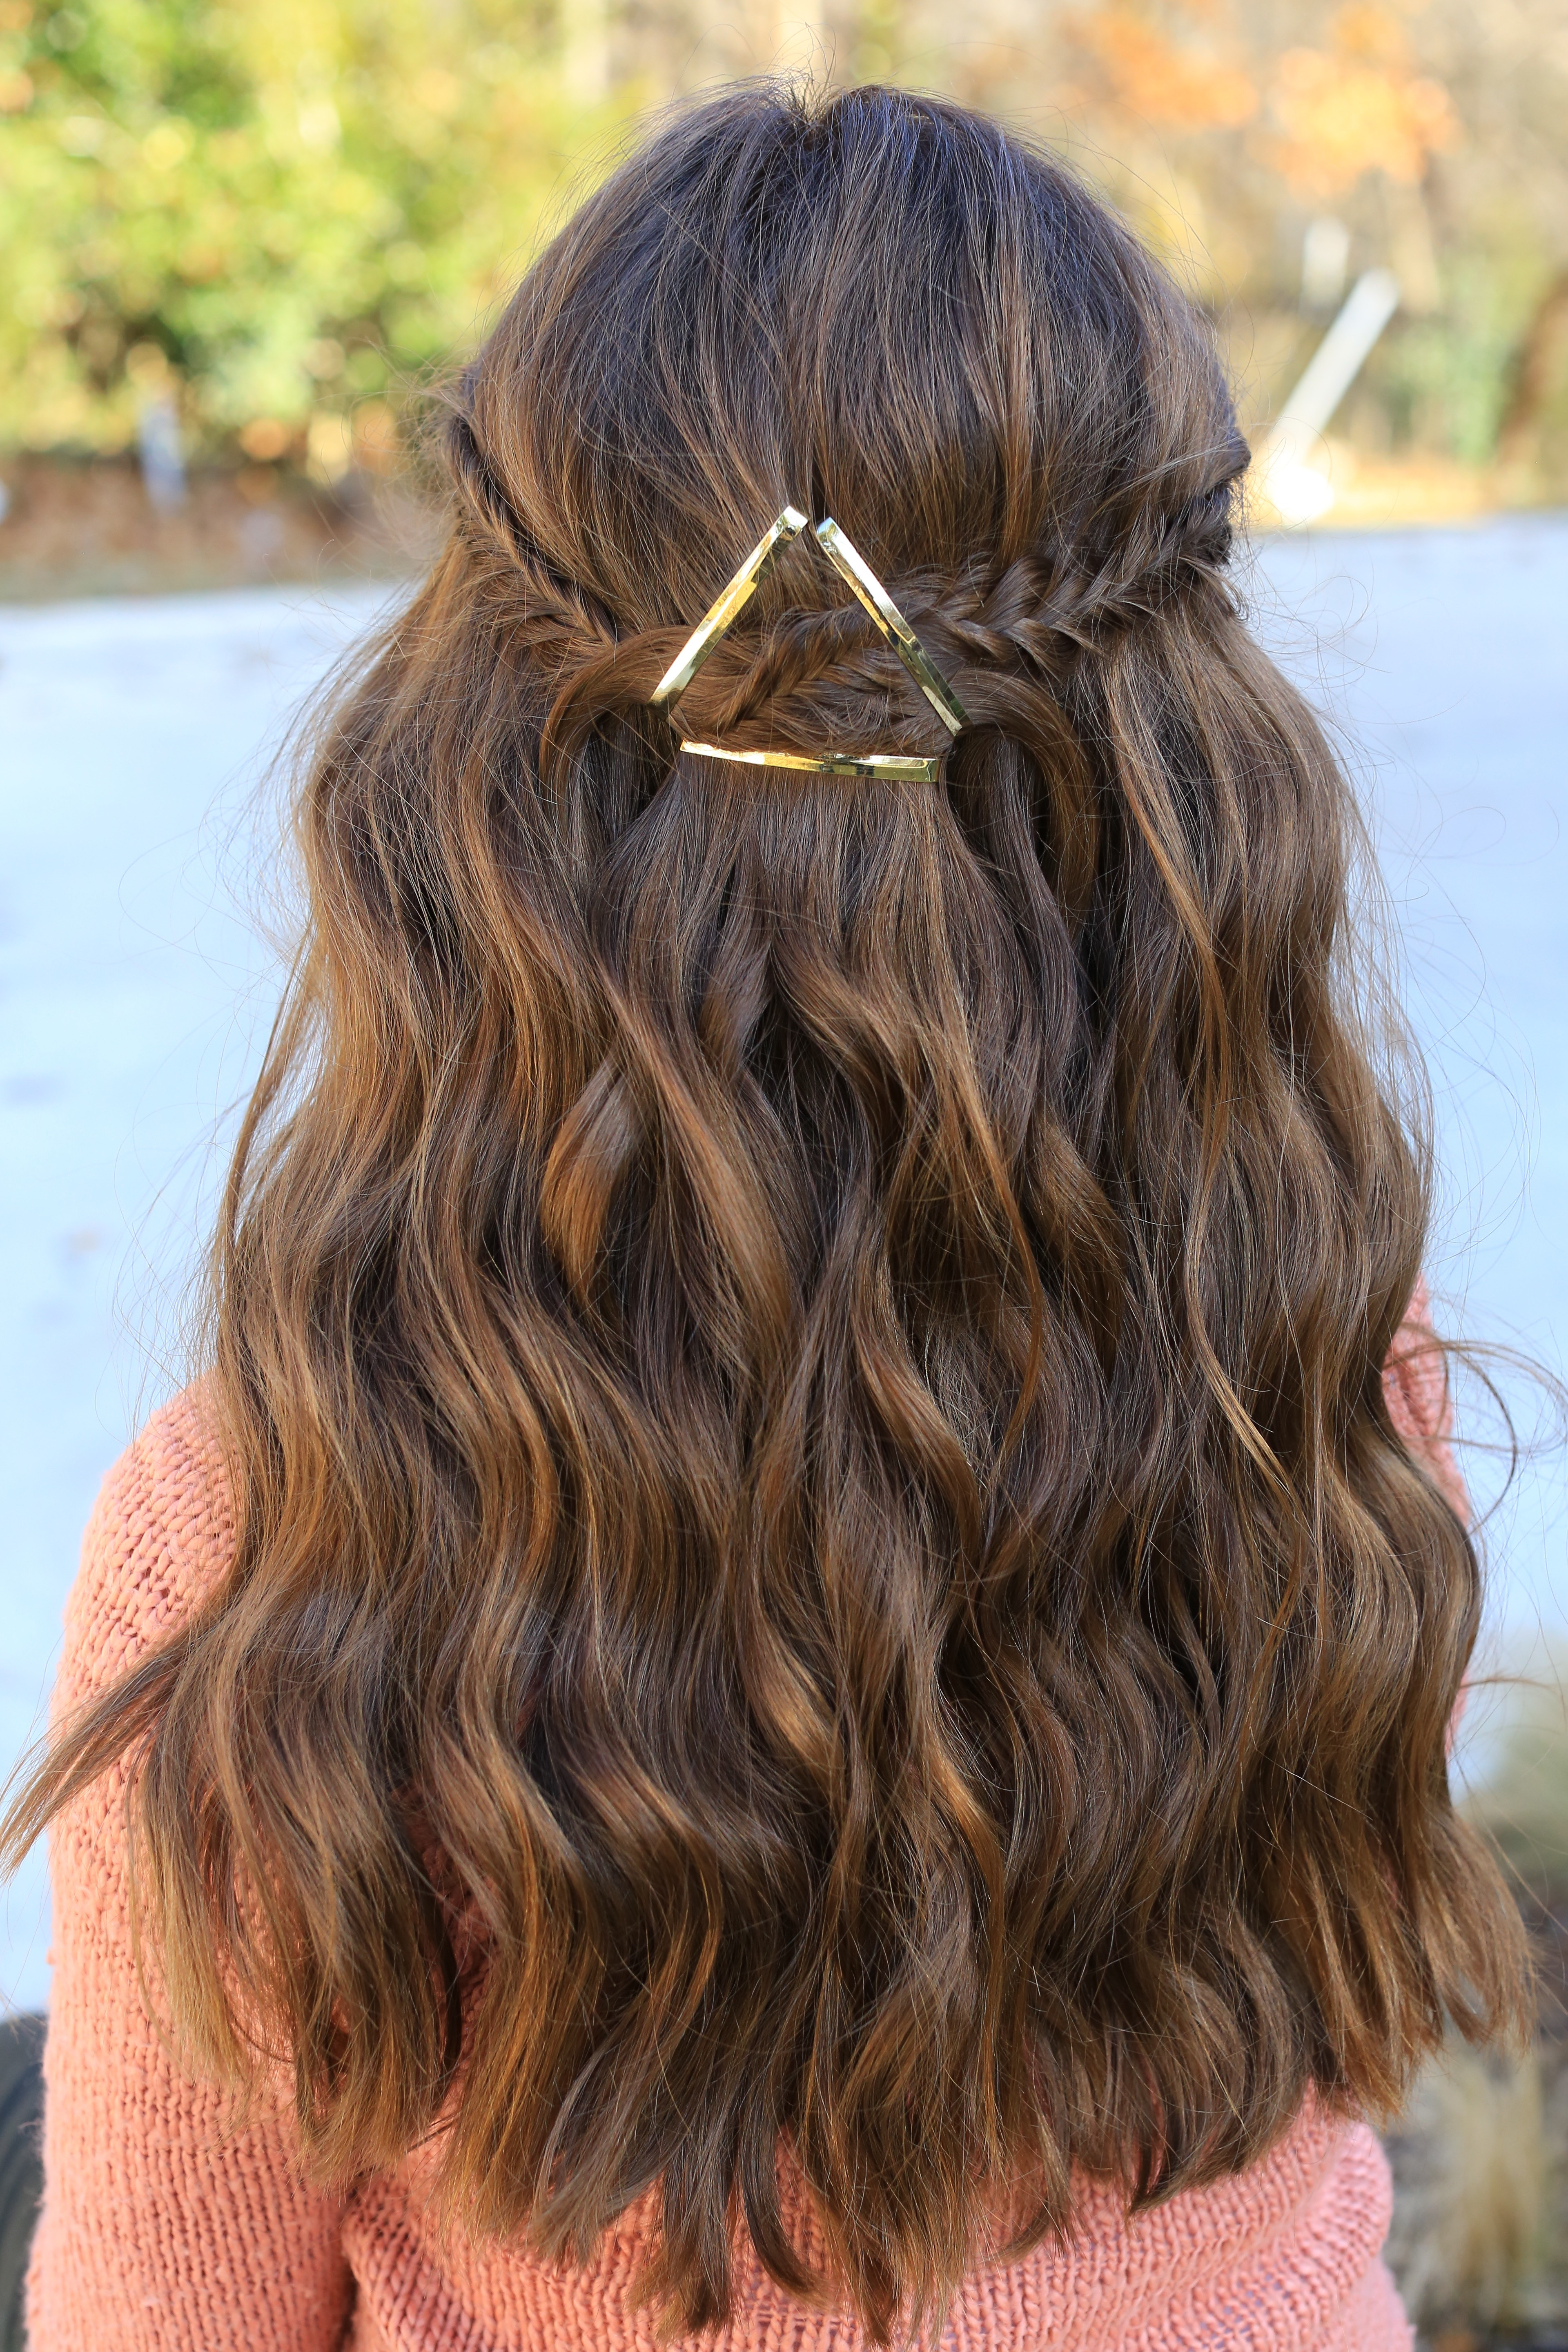 Best ideas about Girls Hair Cut Styles . Save or Pin Barrette Tieback Now.